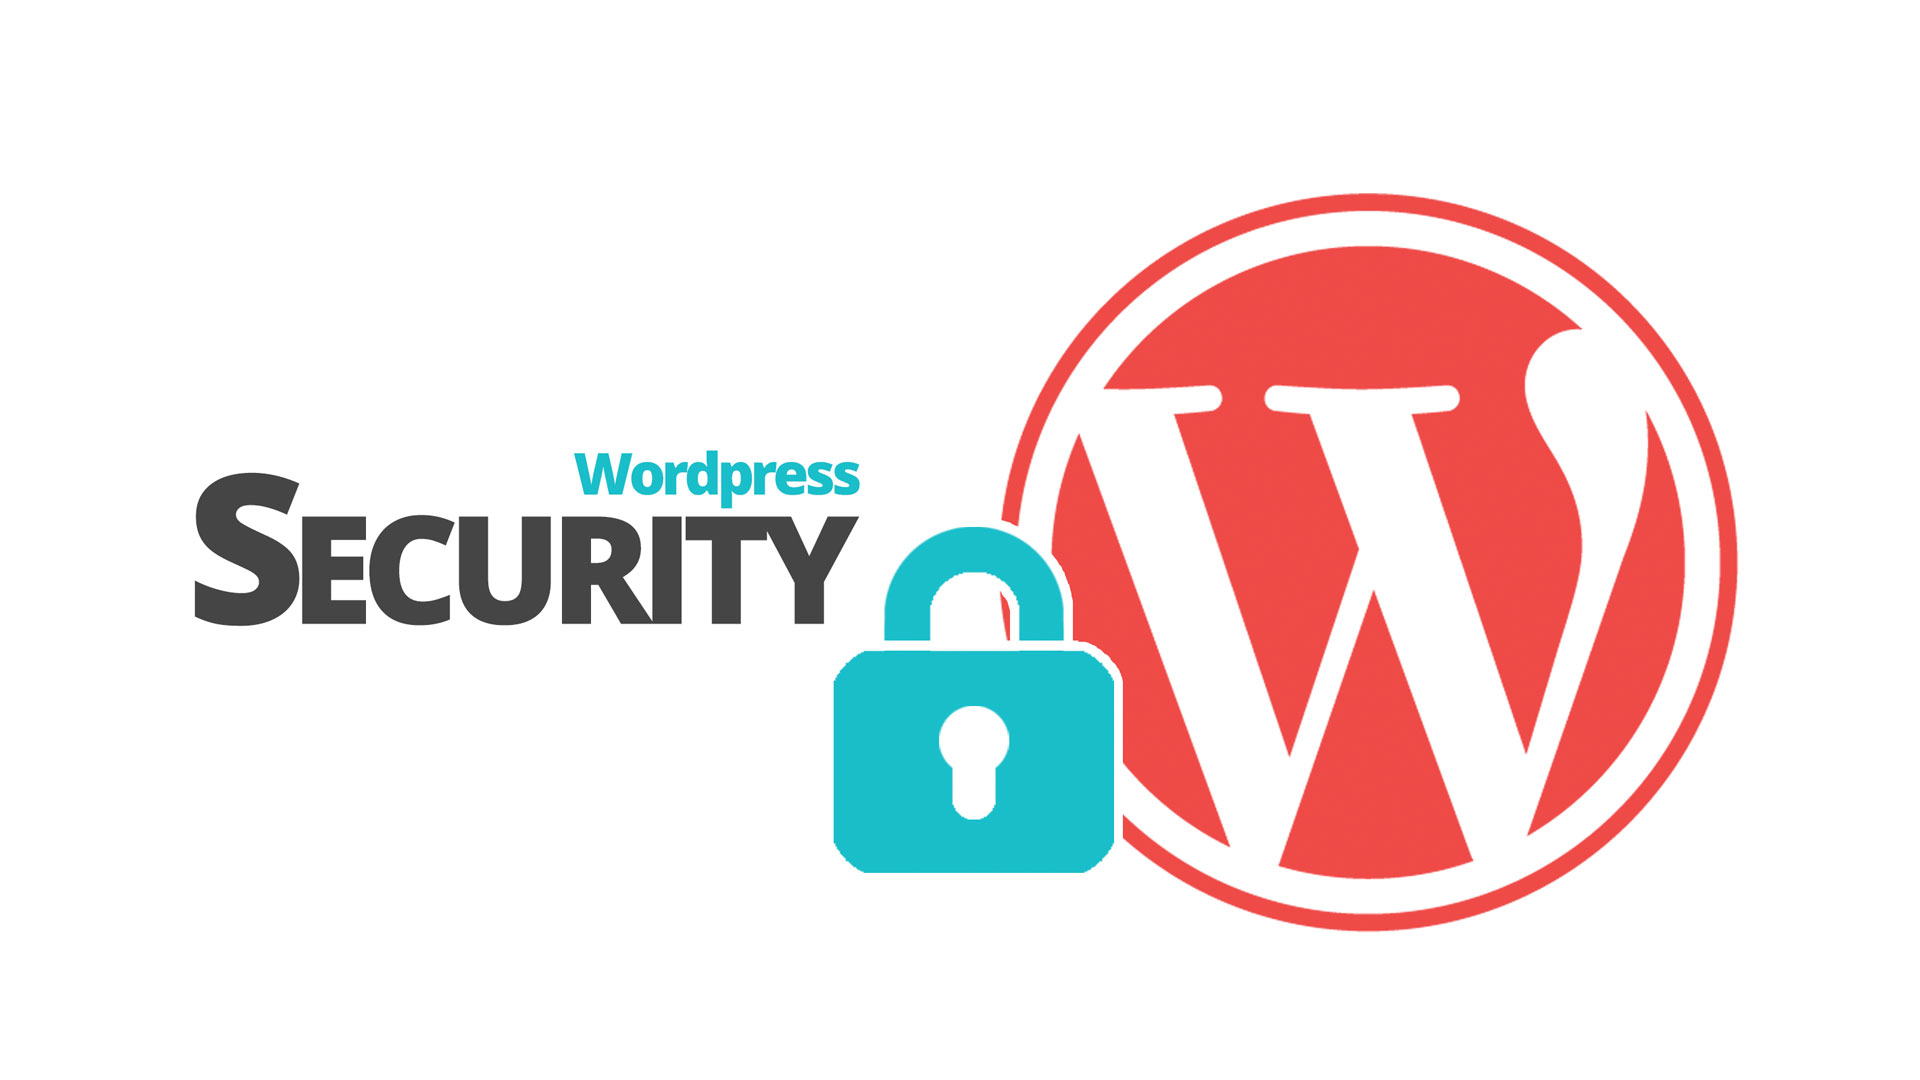 wordpress-security-fi